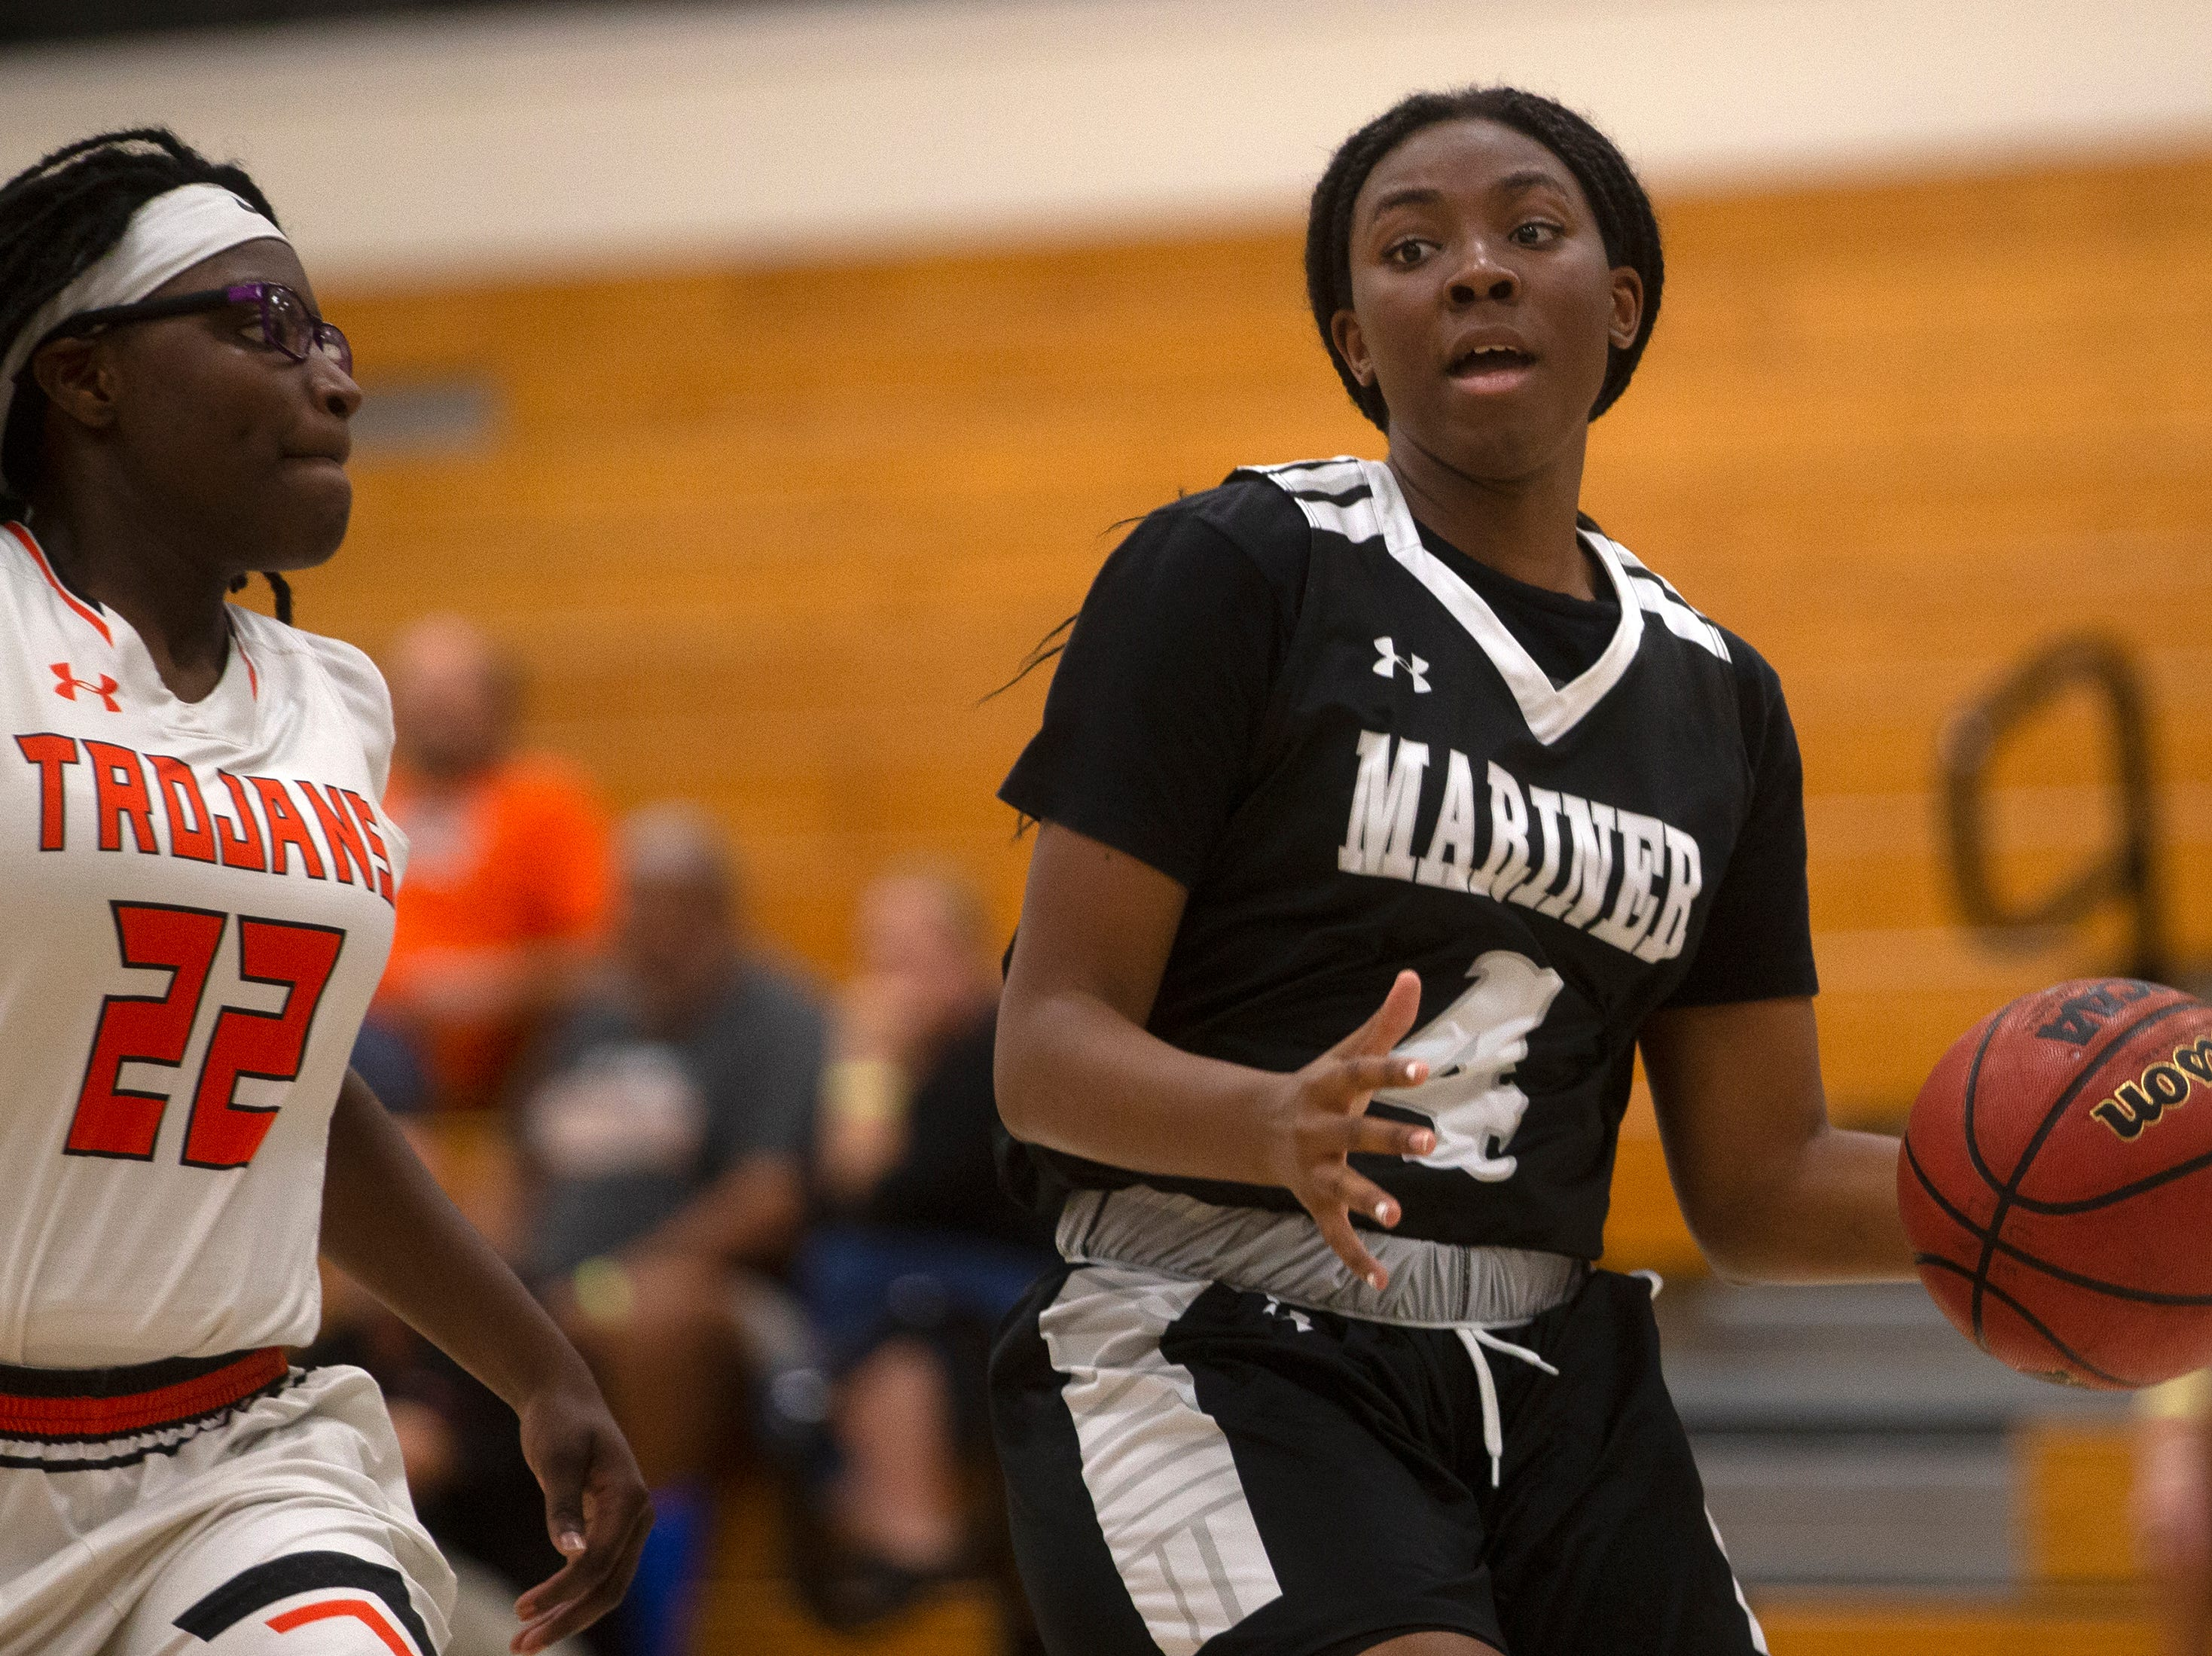 Mariners High School's Naomi Darrett dribbles the ball while guarded by Lely's Kenya Stuart, Thursday, Feb. 6, 2019, at Lely High School.